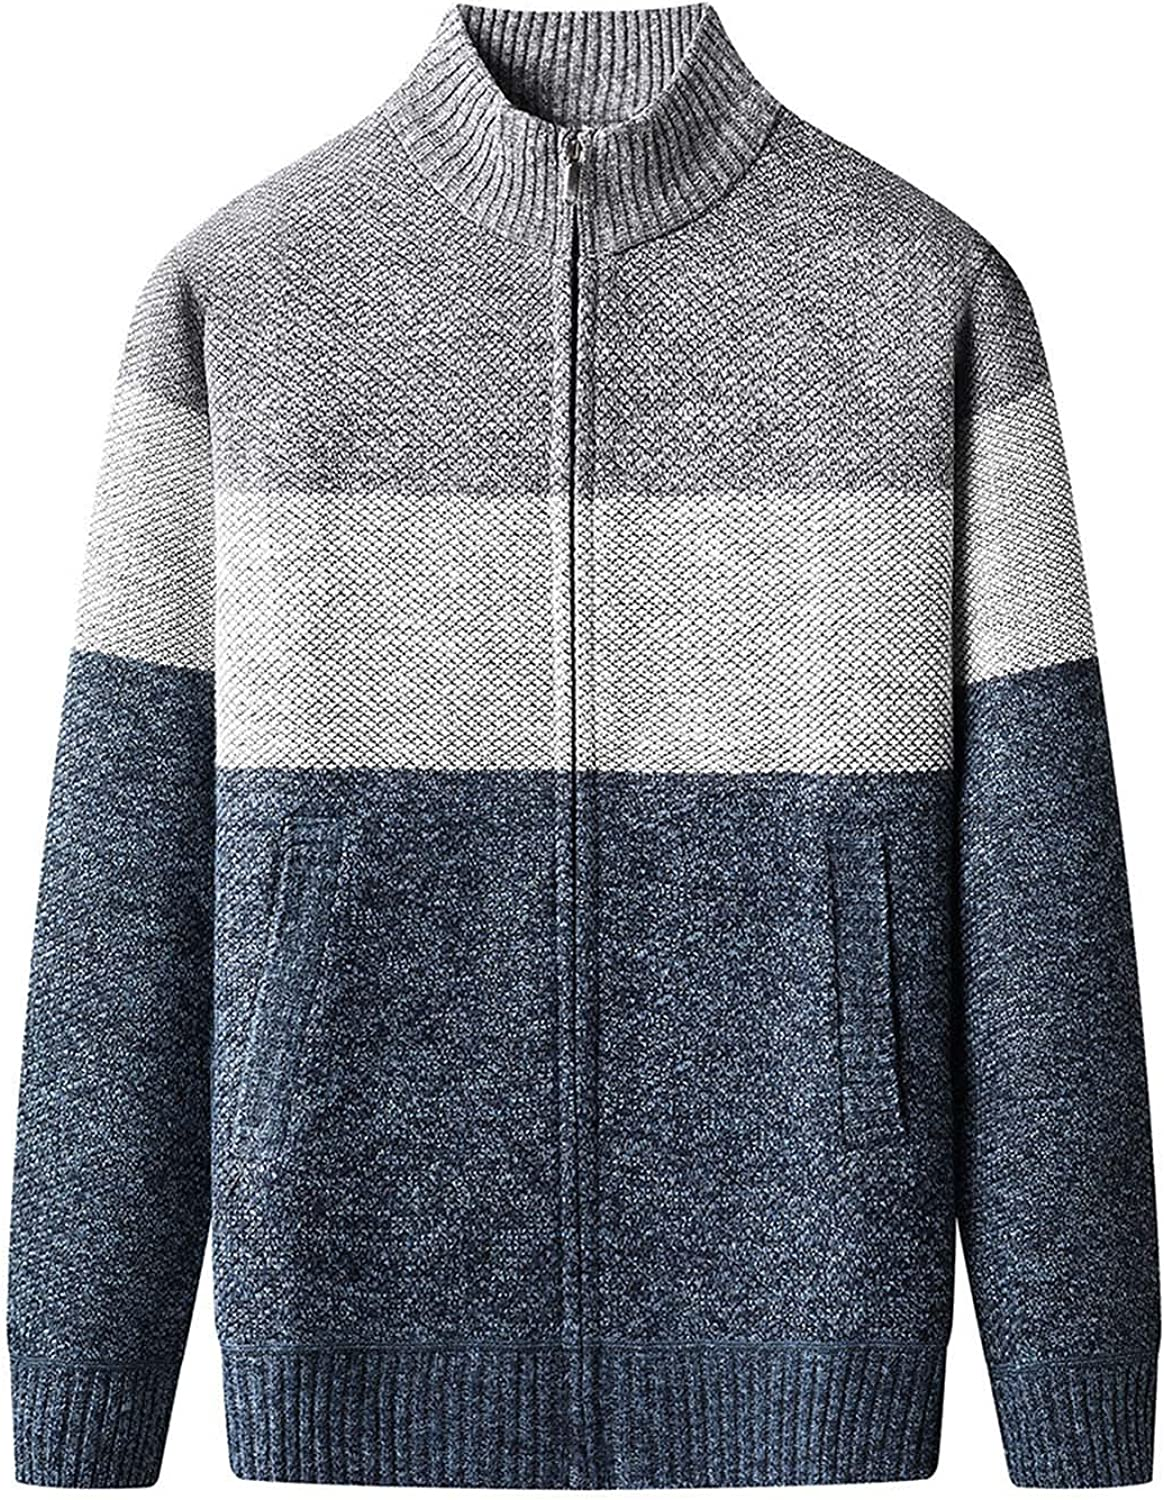 Men's Jackets Slim Fit Autumn Winter Color Matching Cardigan Stand-up Collar Long Sleeve Casual Knitted Sweater Coat